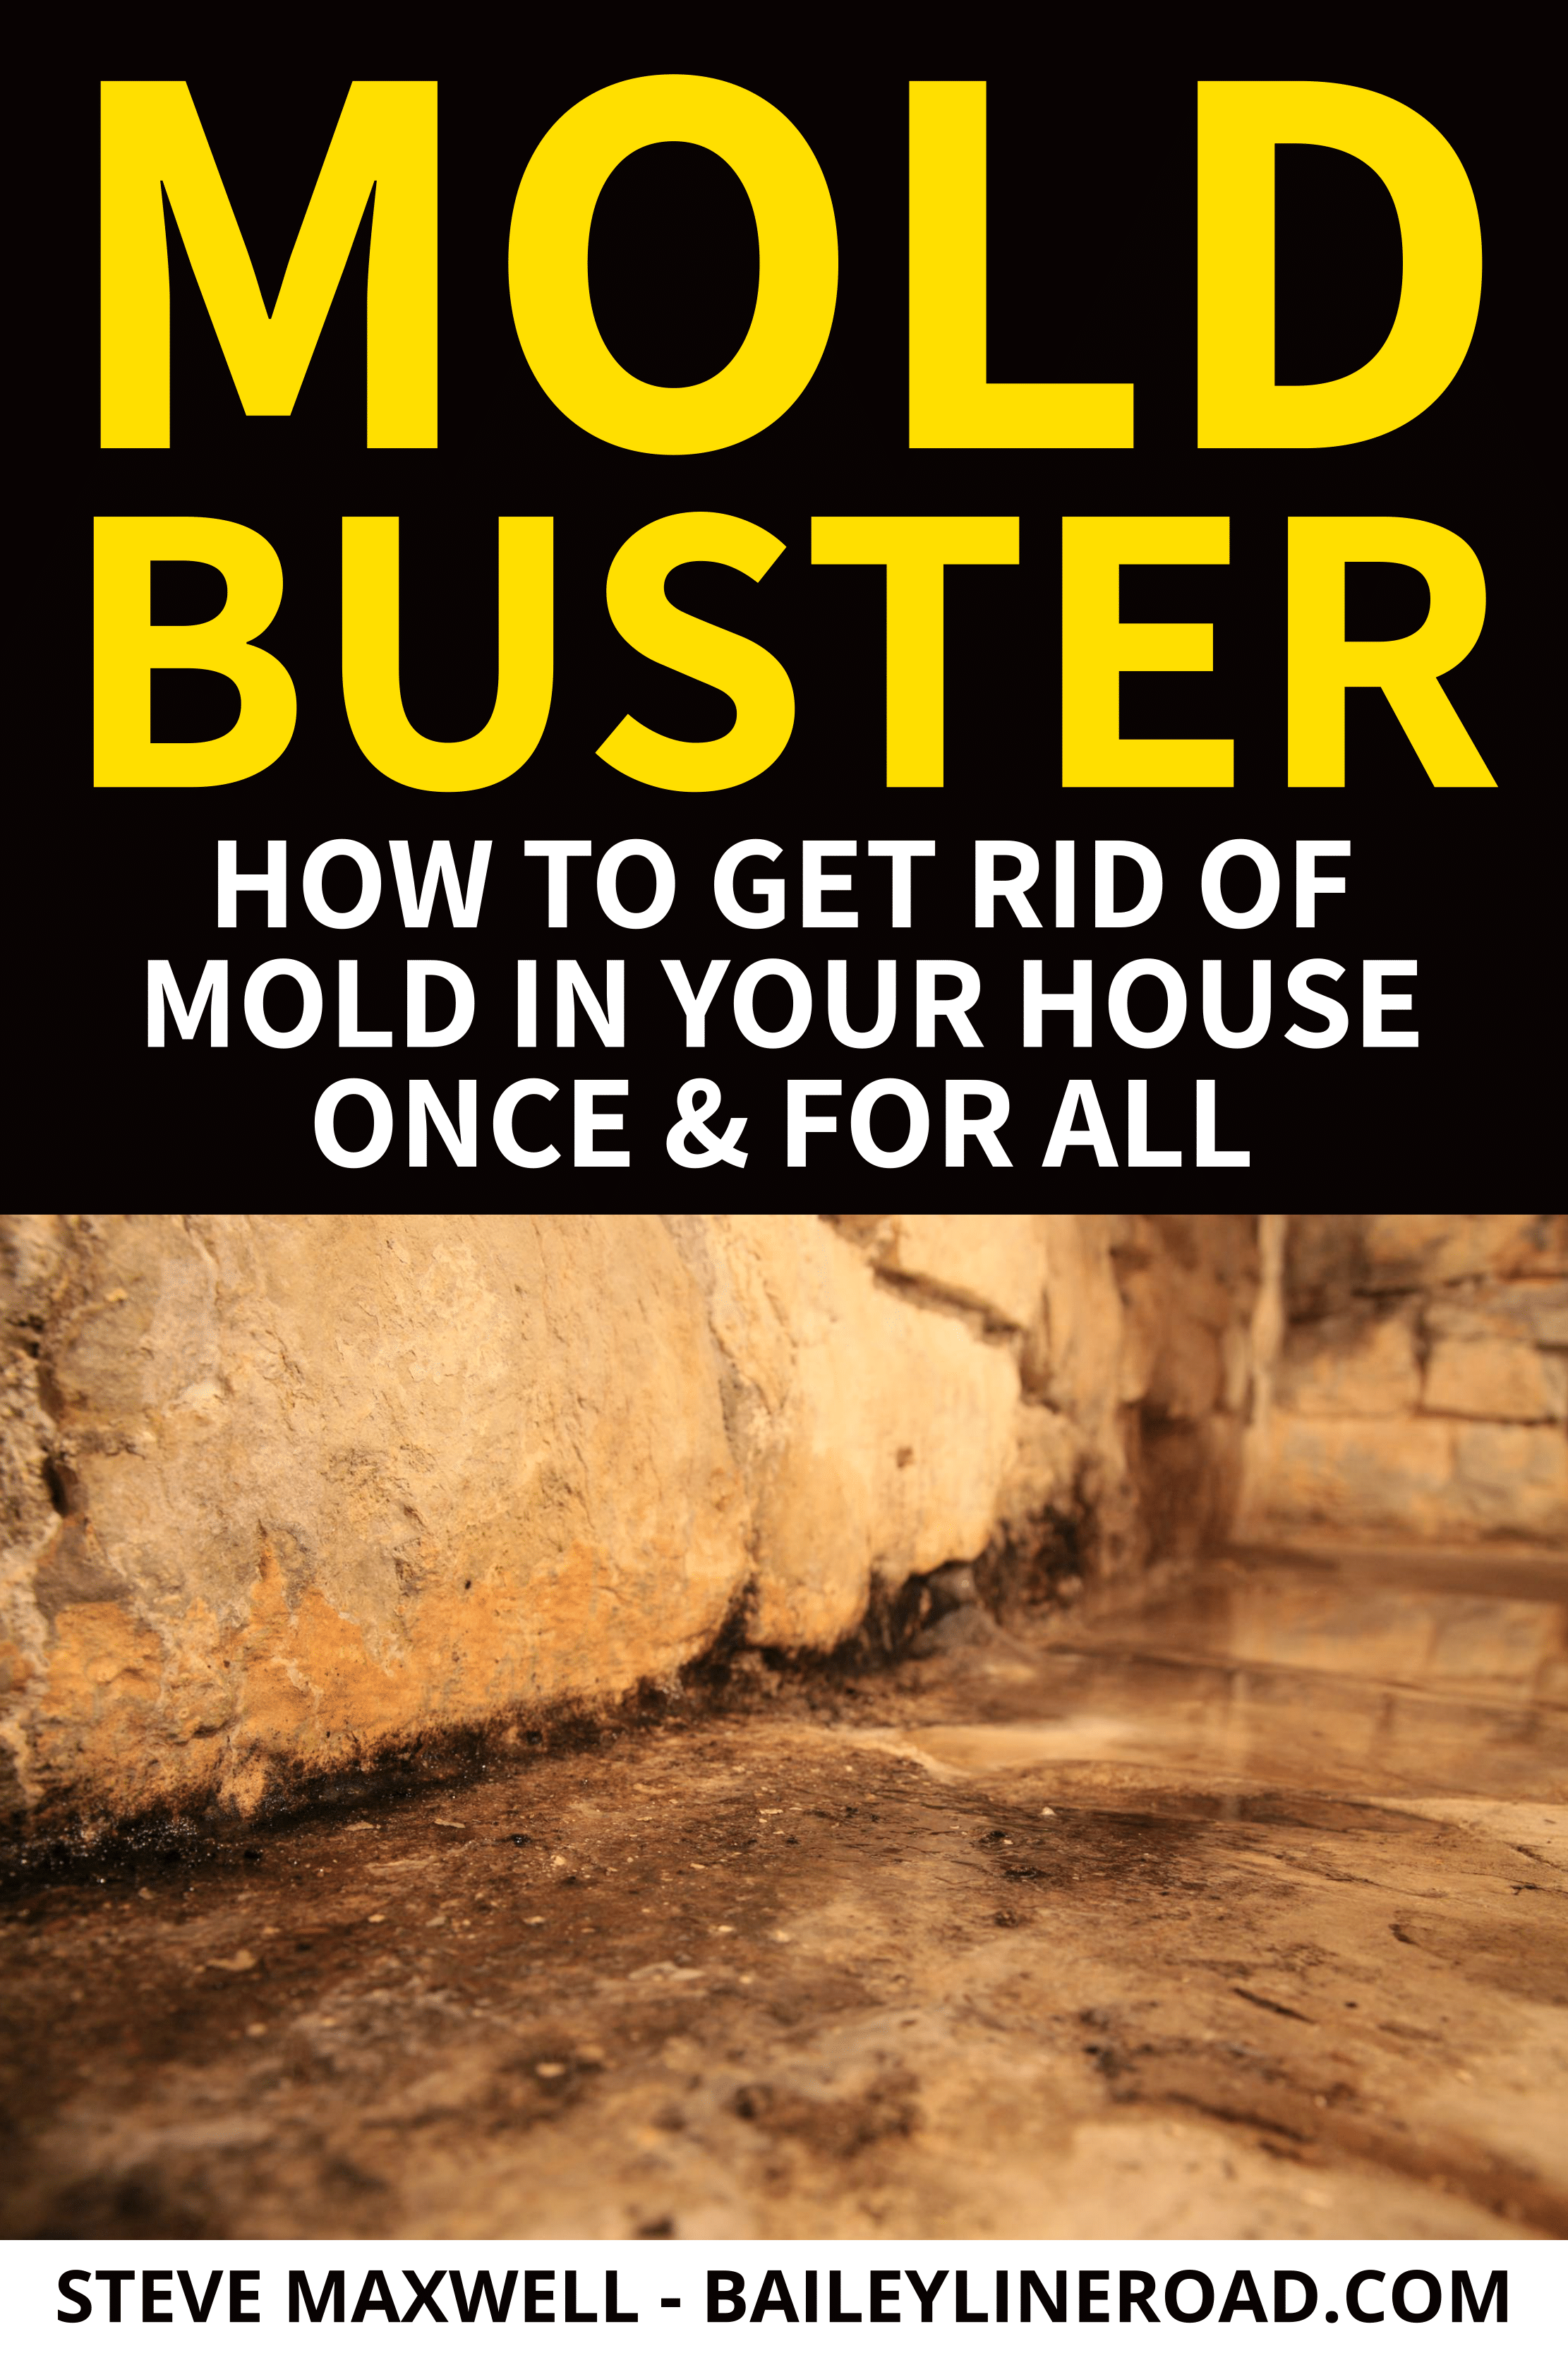 How To Get Rid Of Mold A Detailed Online Course For Homeowners Get Rid Of Mold Mold In Bathroom Mold On Bathroom Ceiling